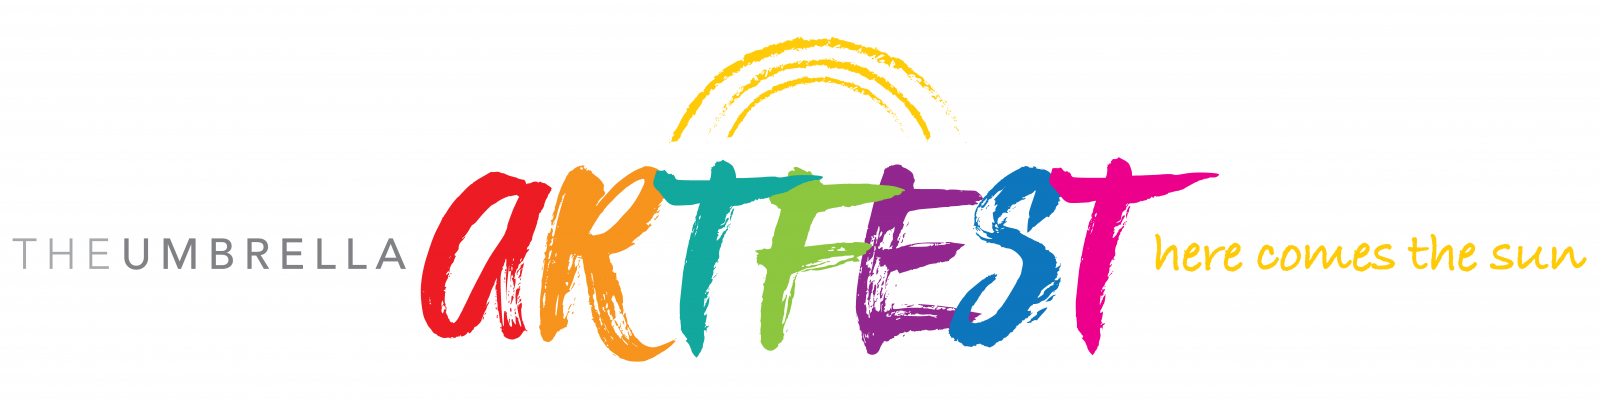 The Umbrella Spring Artfest Logo